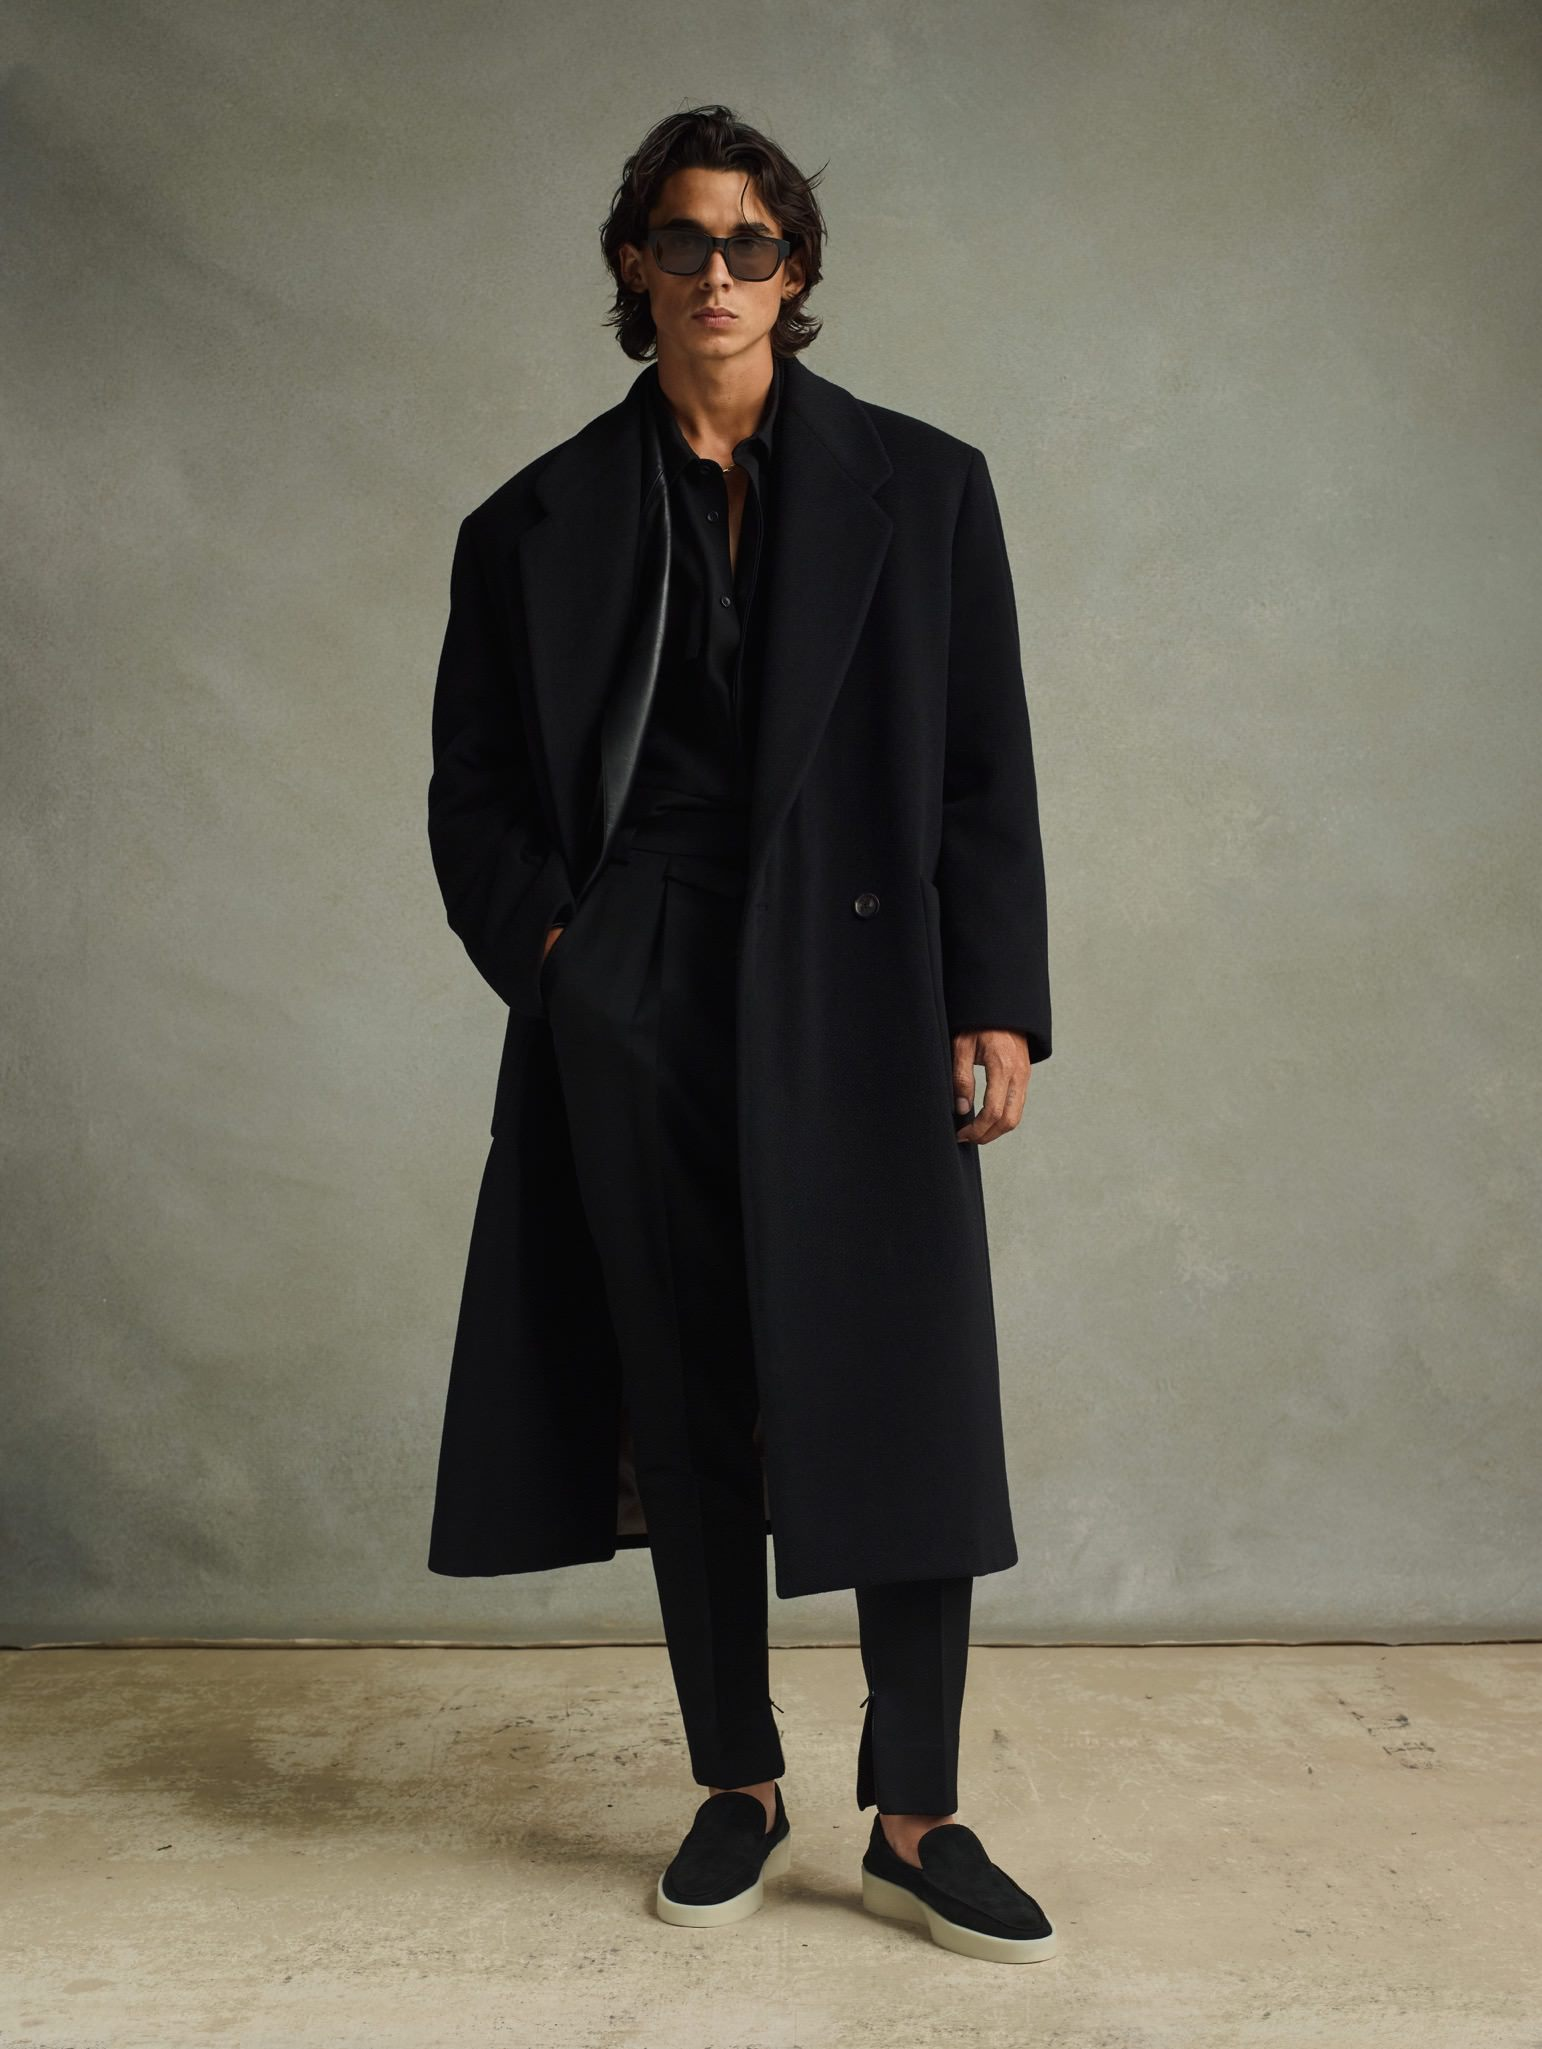 fear-of-god-seventh-collection-lookbook